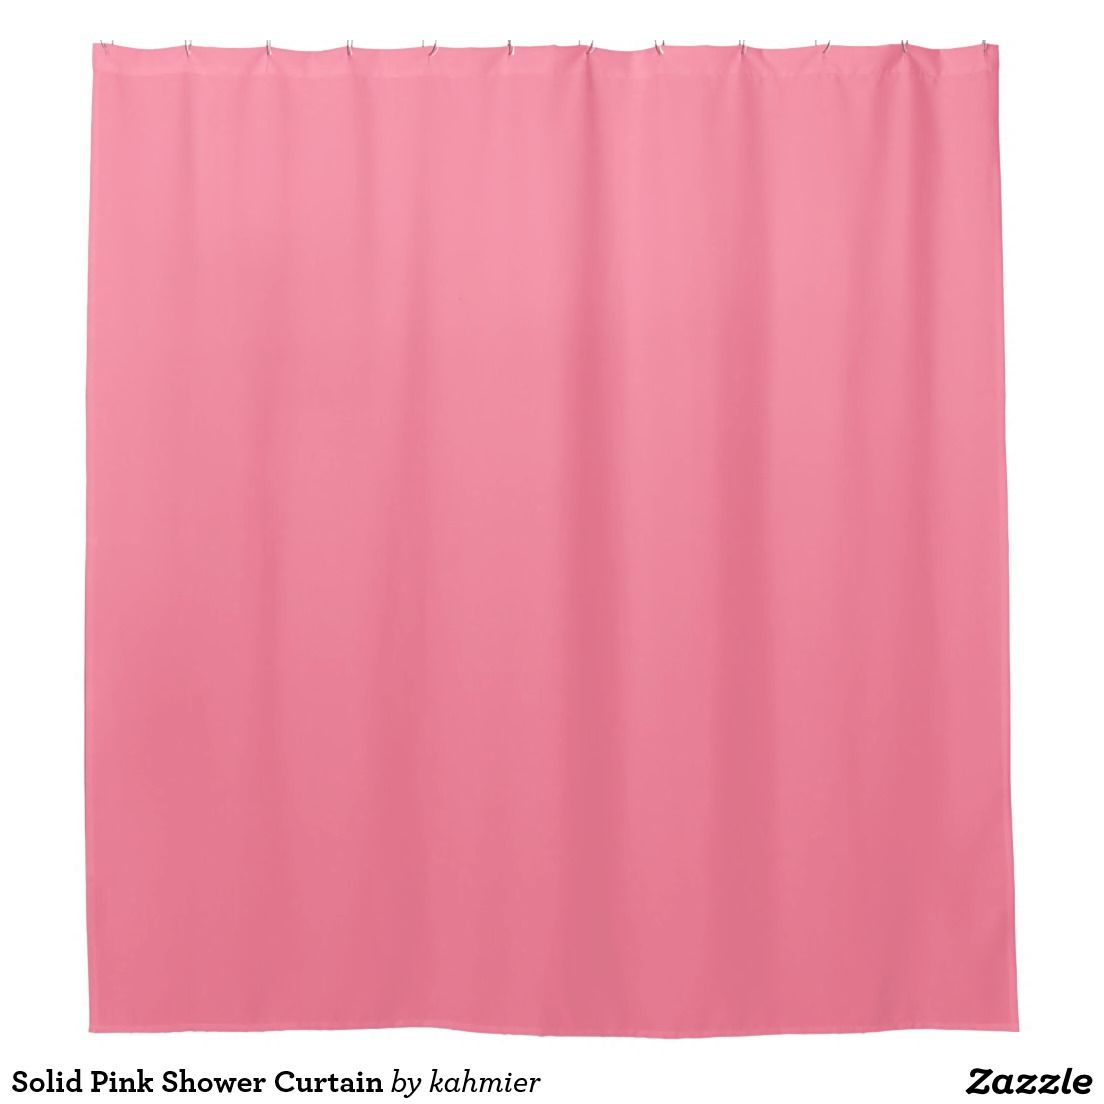 Solid Pink Shower Curtain